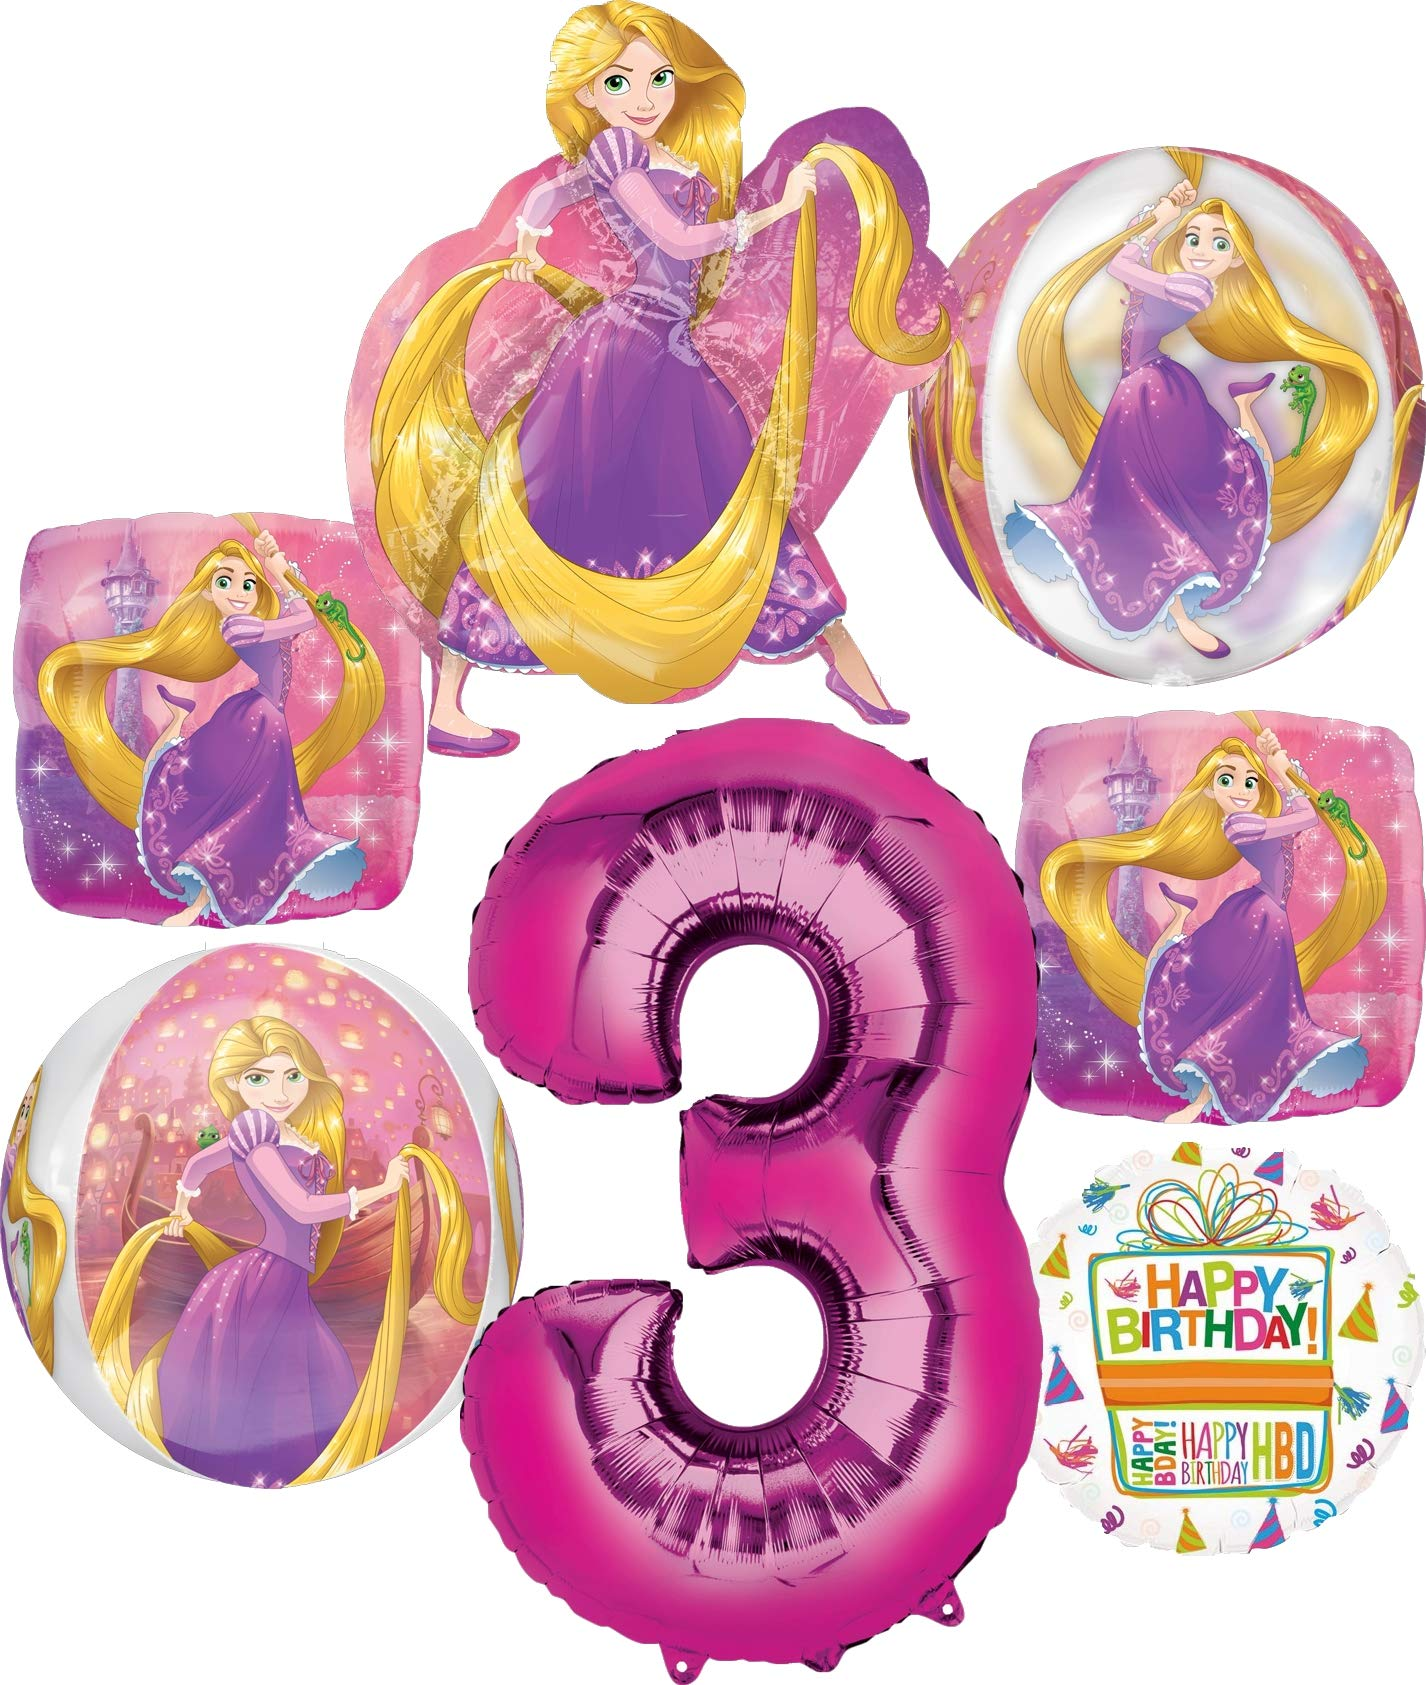 Moana Party Supplies 3rd Birthday Balloon Bouquet Decorations Pink Number 3